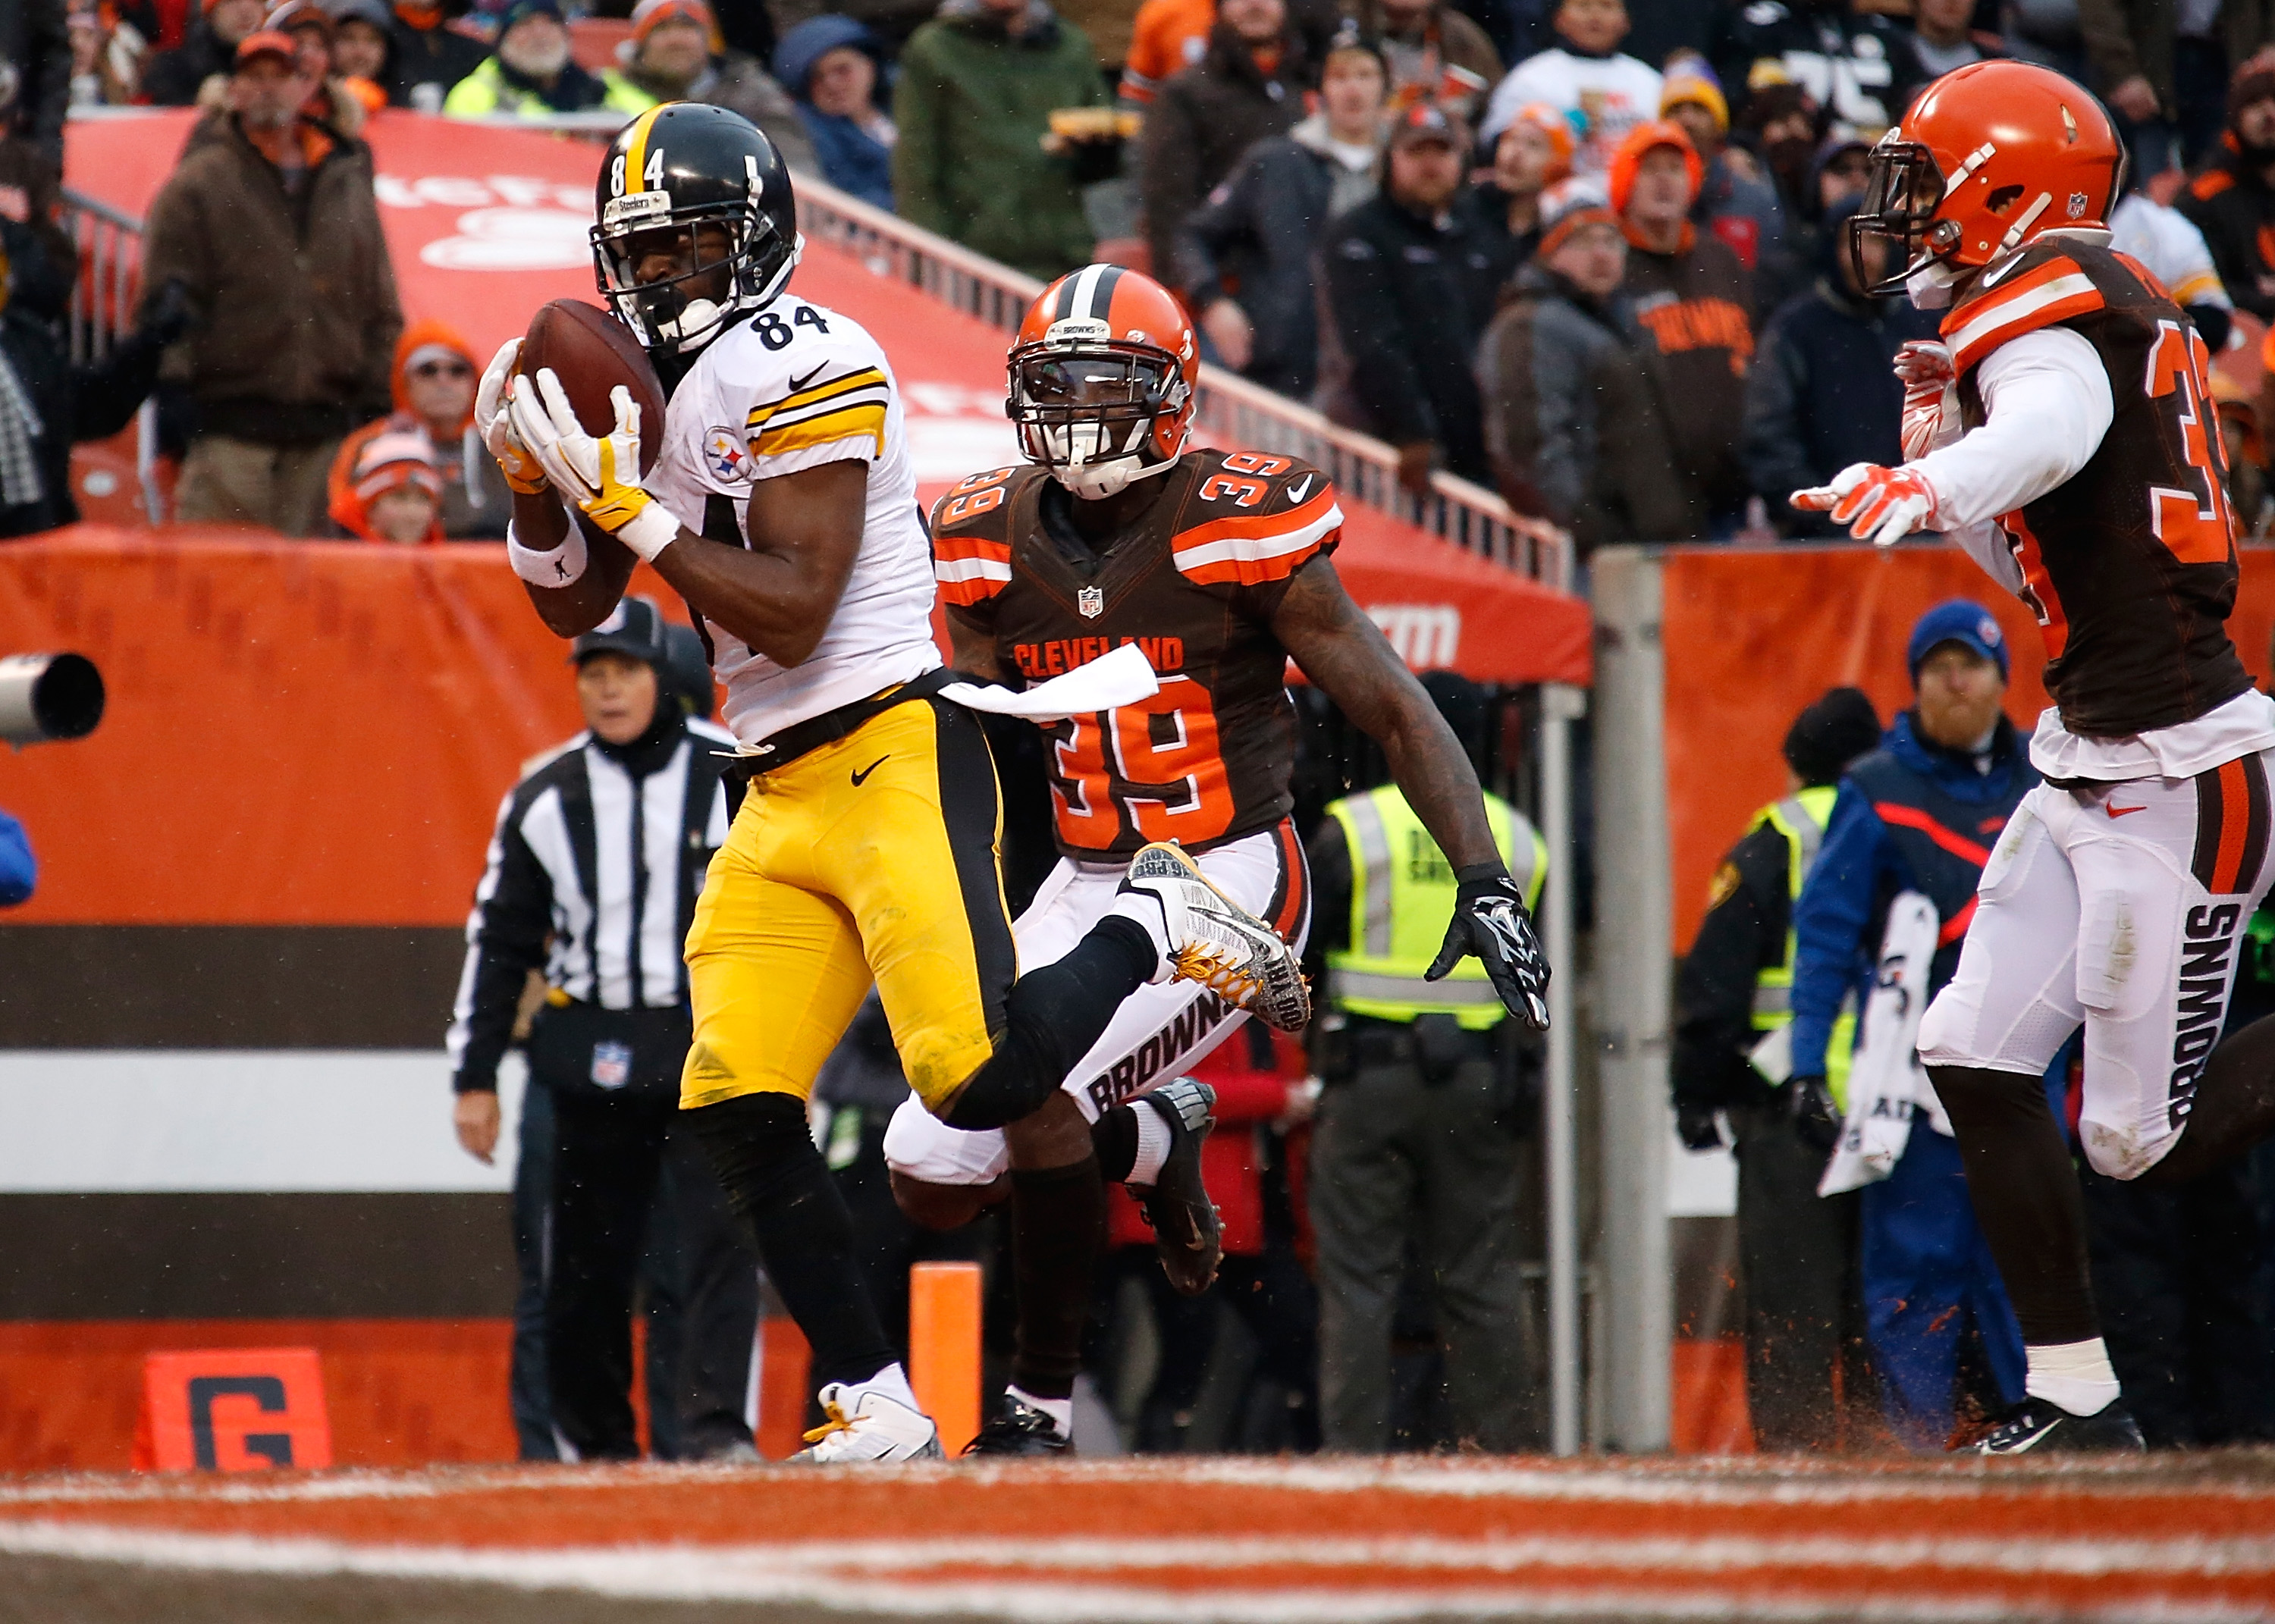 CLEVELAND, OH - JANUARY 3: Antonio Brown #84 of the Pittsburgh Steelers makes a touchdown catch in front of Tashaun Gipson #39 of the Cleveland Browns during the second quarter at FirstEnergy Stadium on January 3, 2016 in Cleveland, Ohio. (Photo by Gregory Shamus/Getty Images)